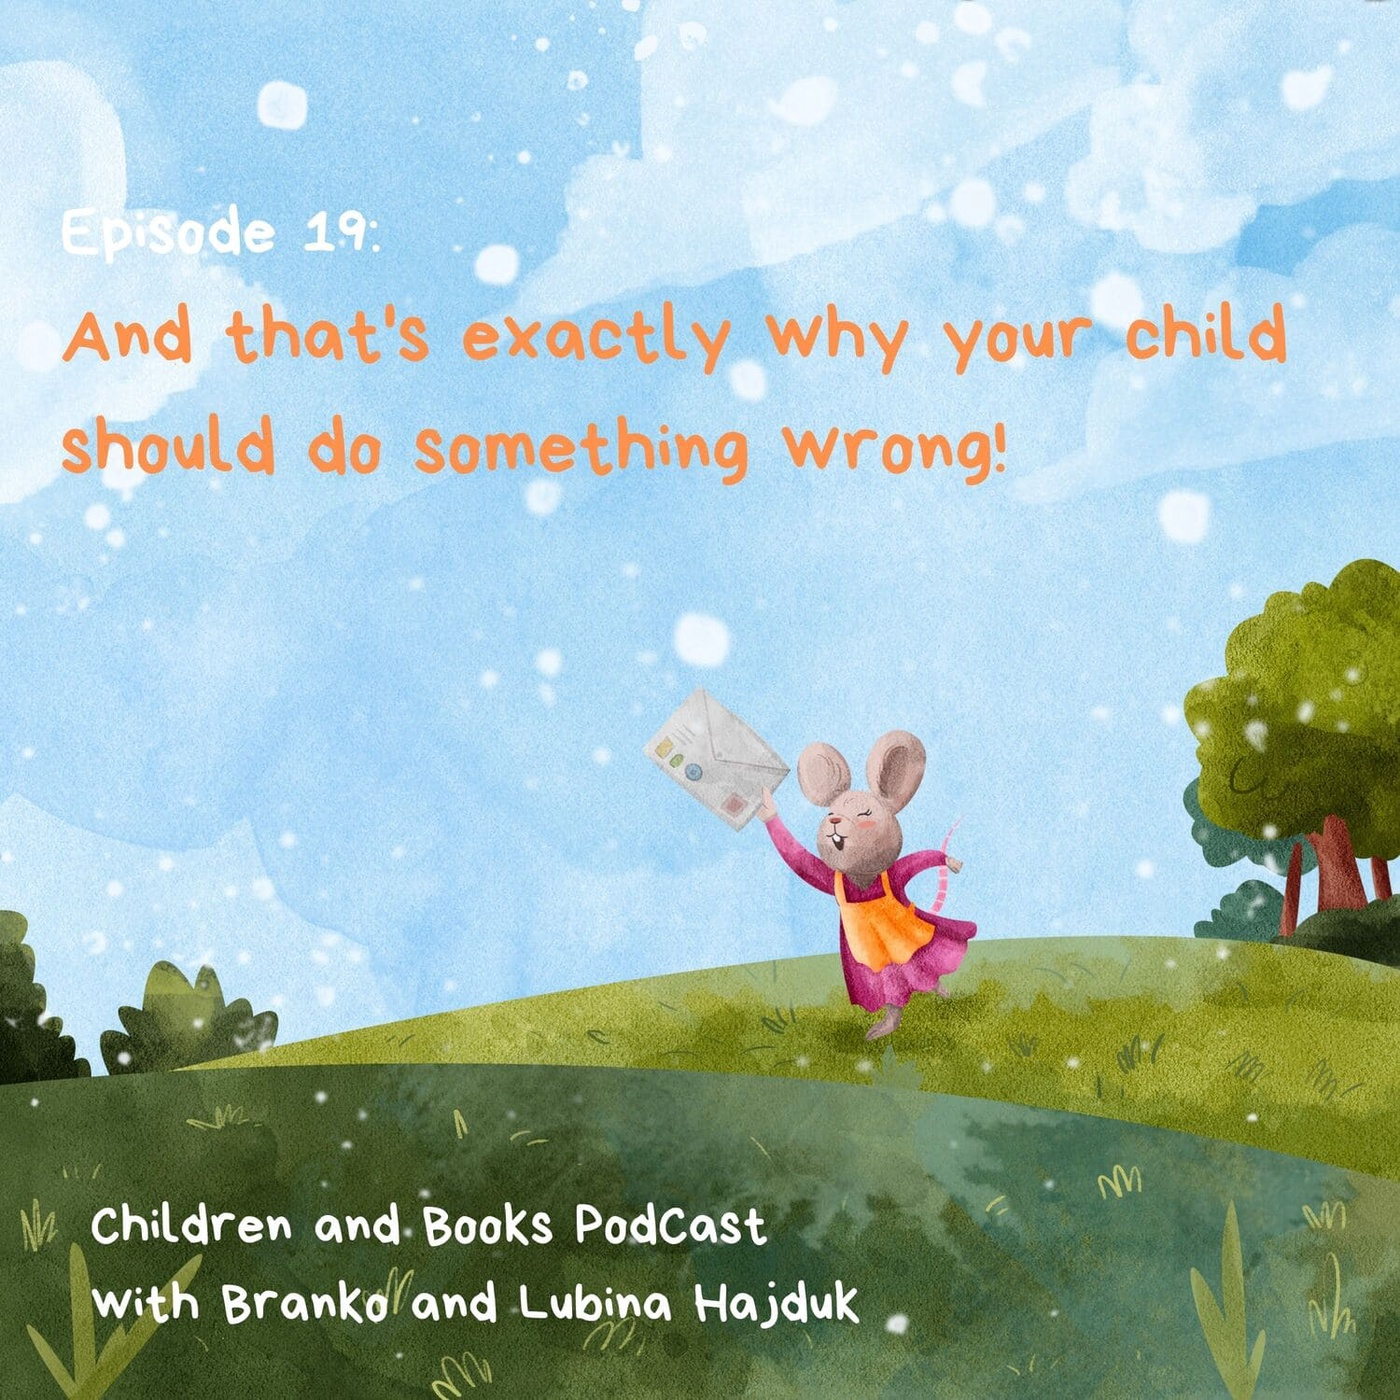 And that's exactly why your child should do something wrong! - Children and books